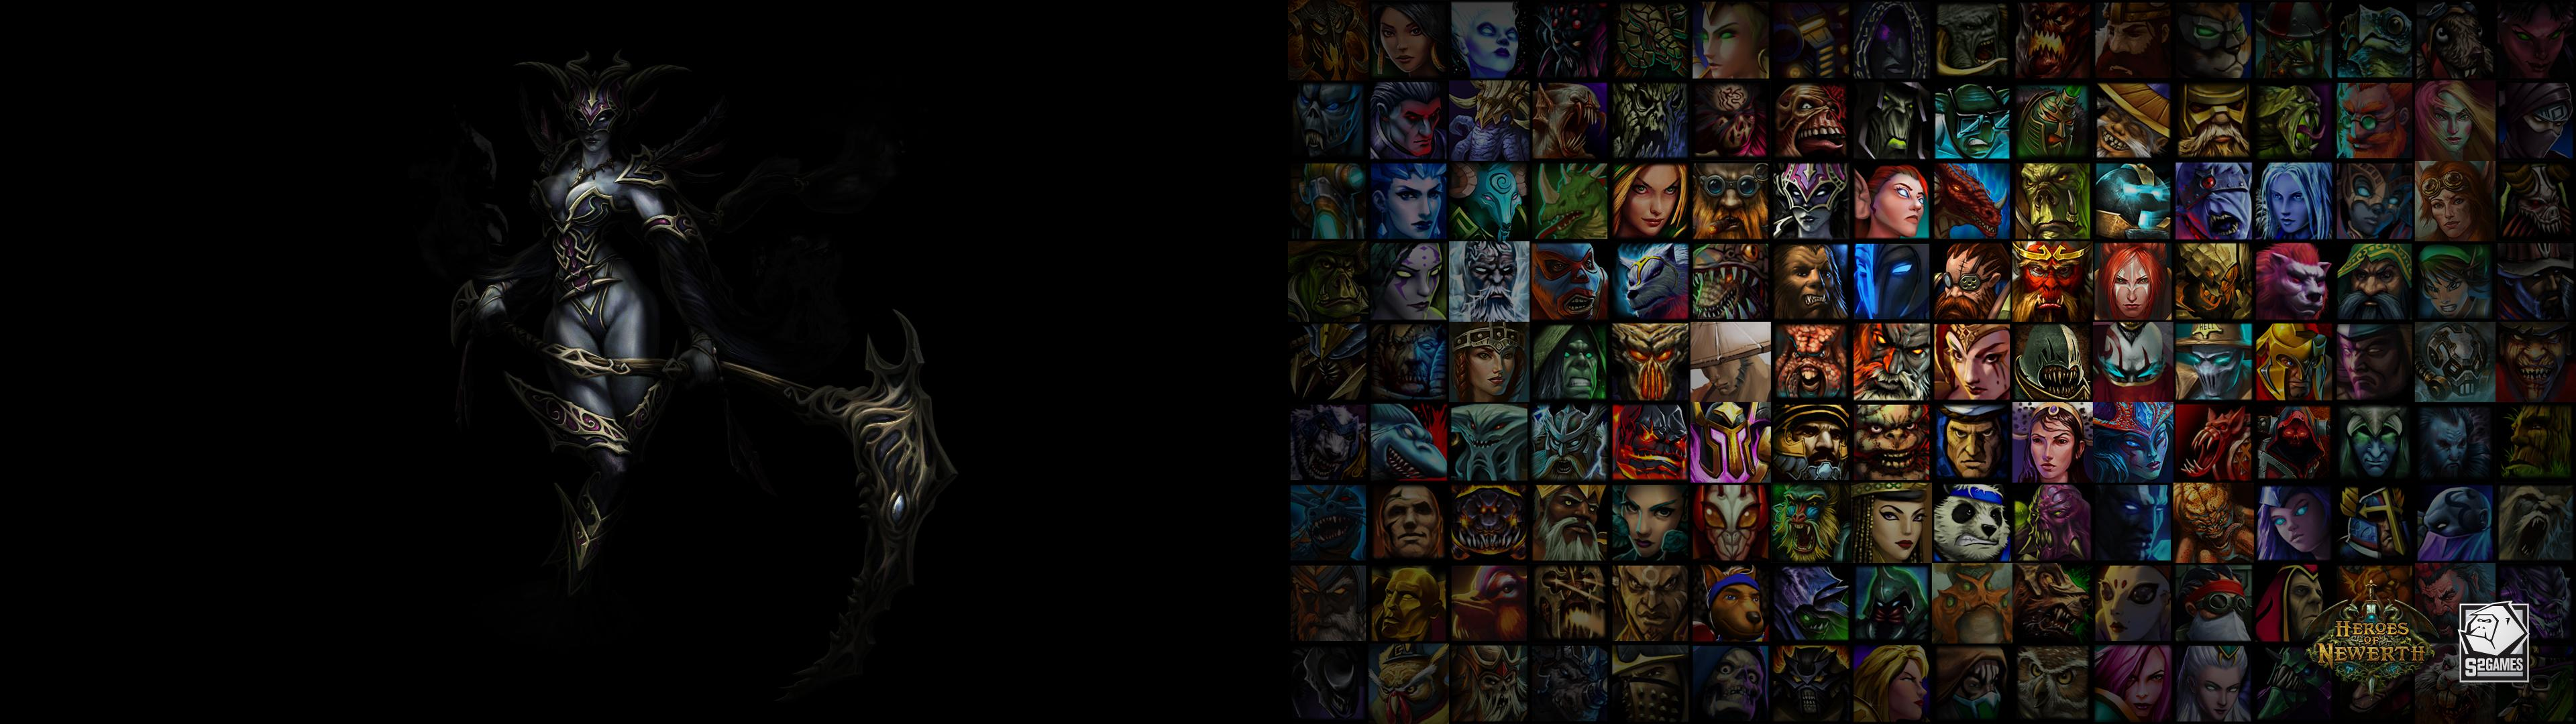 Free Download Dual Monitors 3840x1080 Heroes Of Newerth Wallpaper